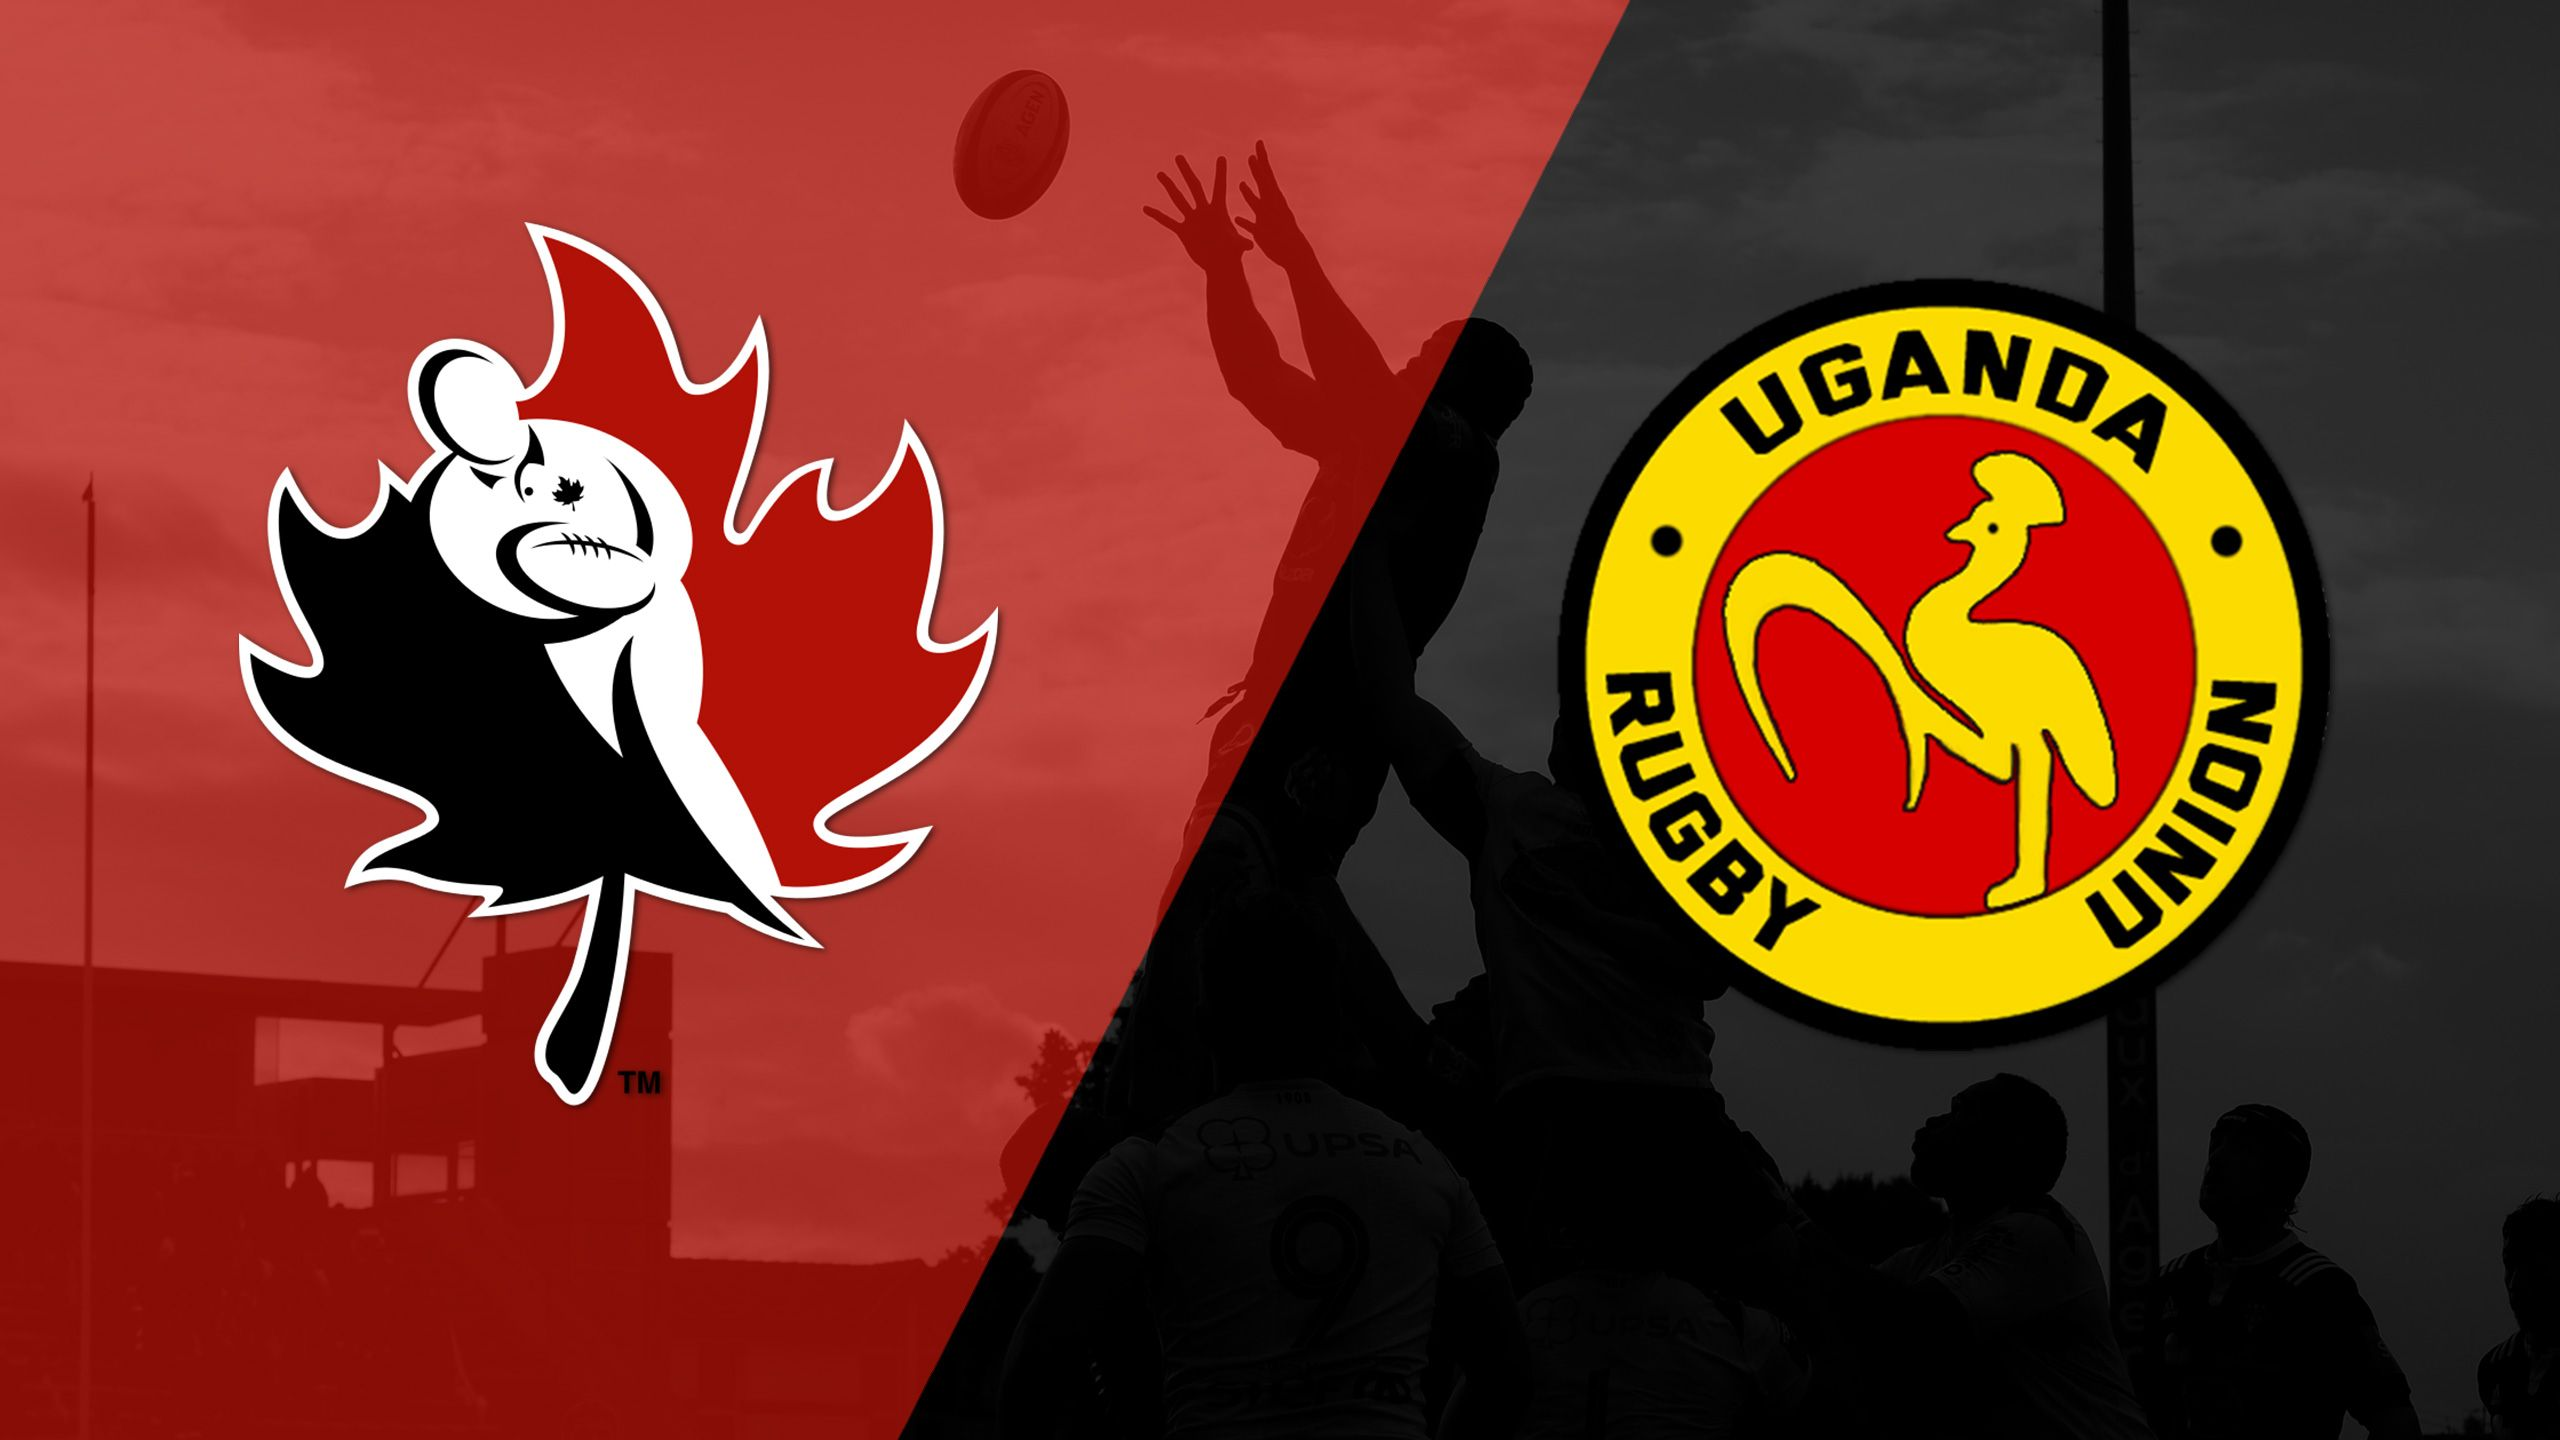 Canada vs. Uganda (World Rugby Sevens Series)